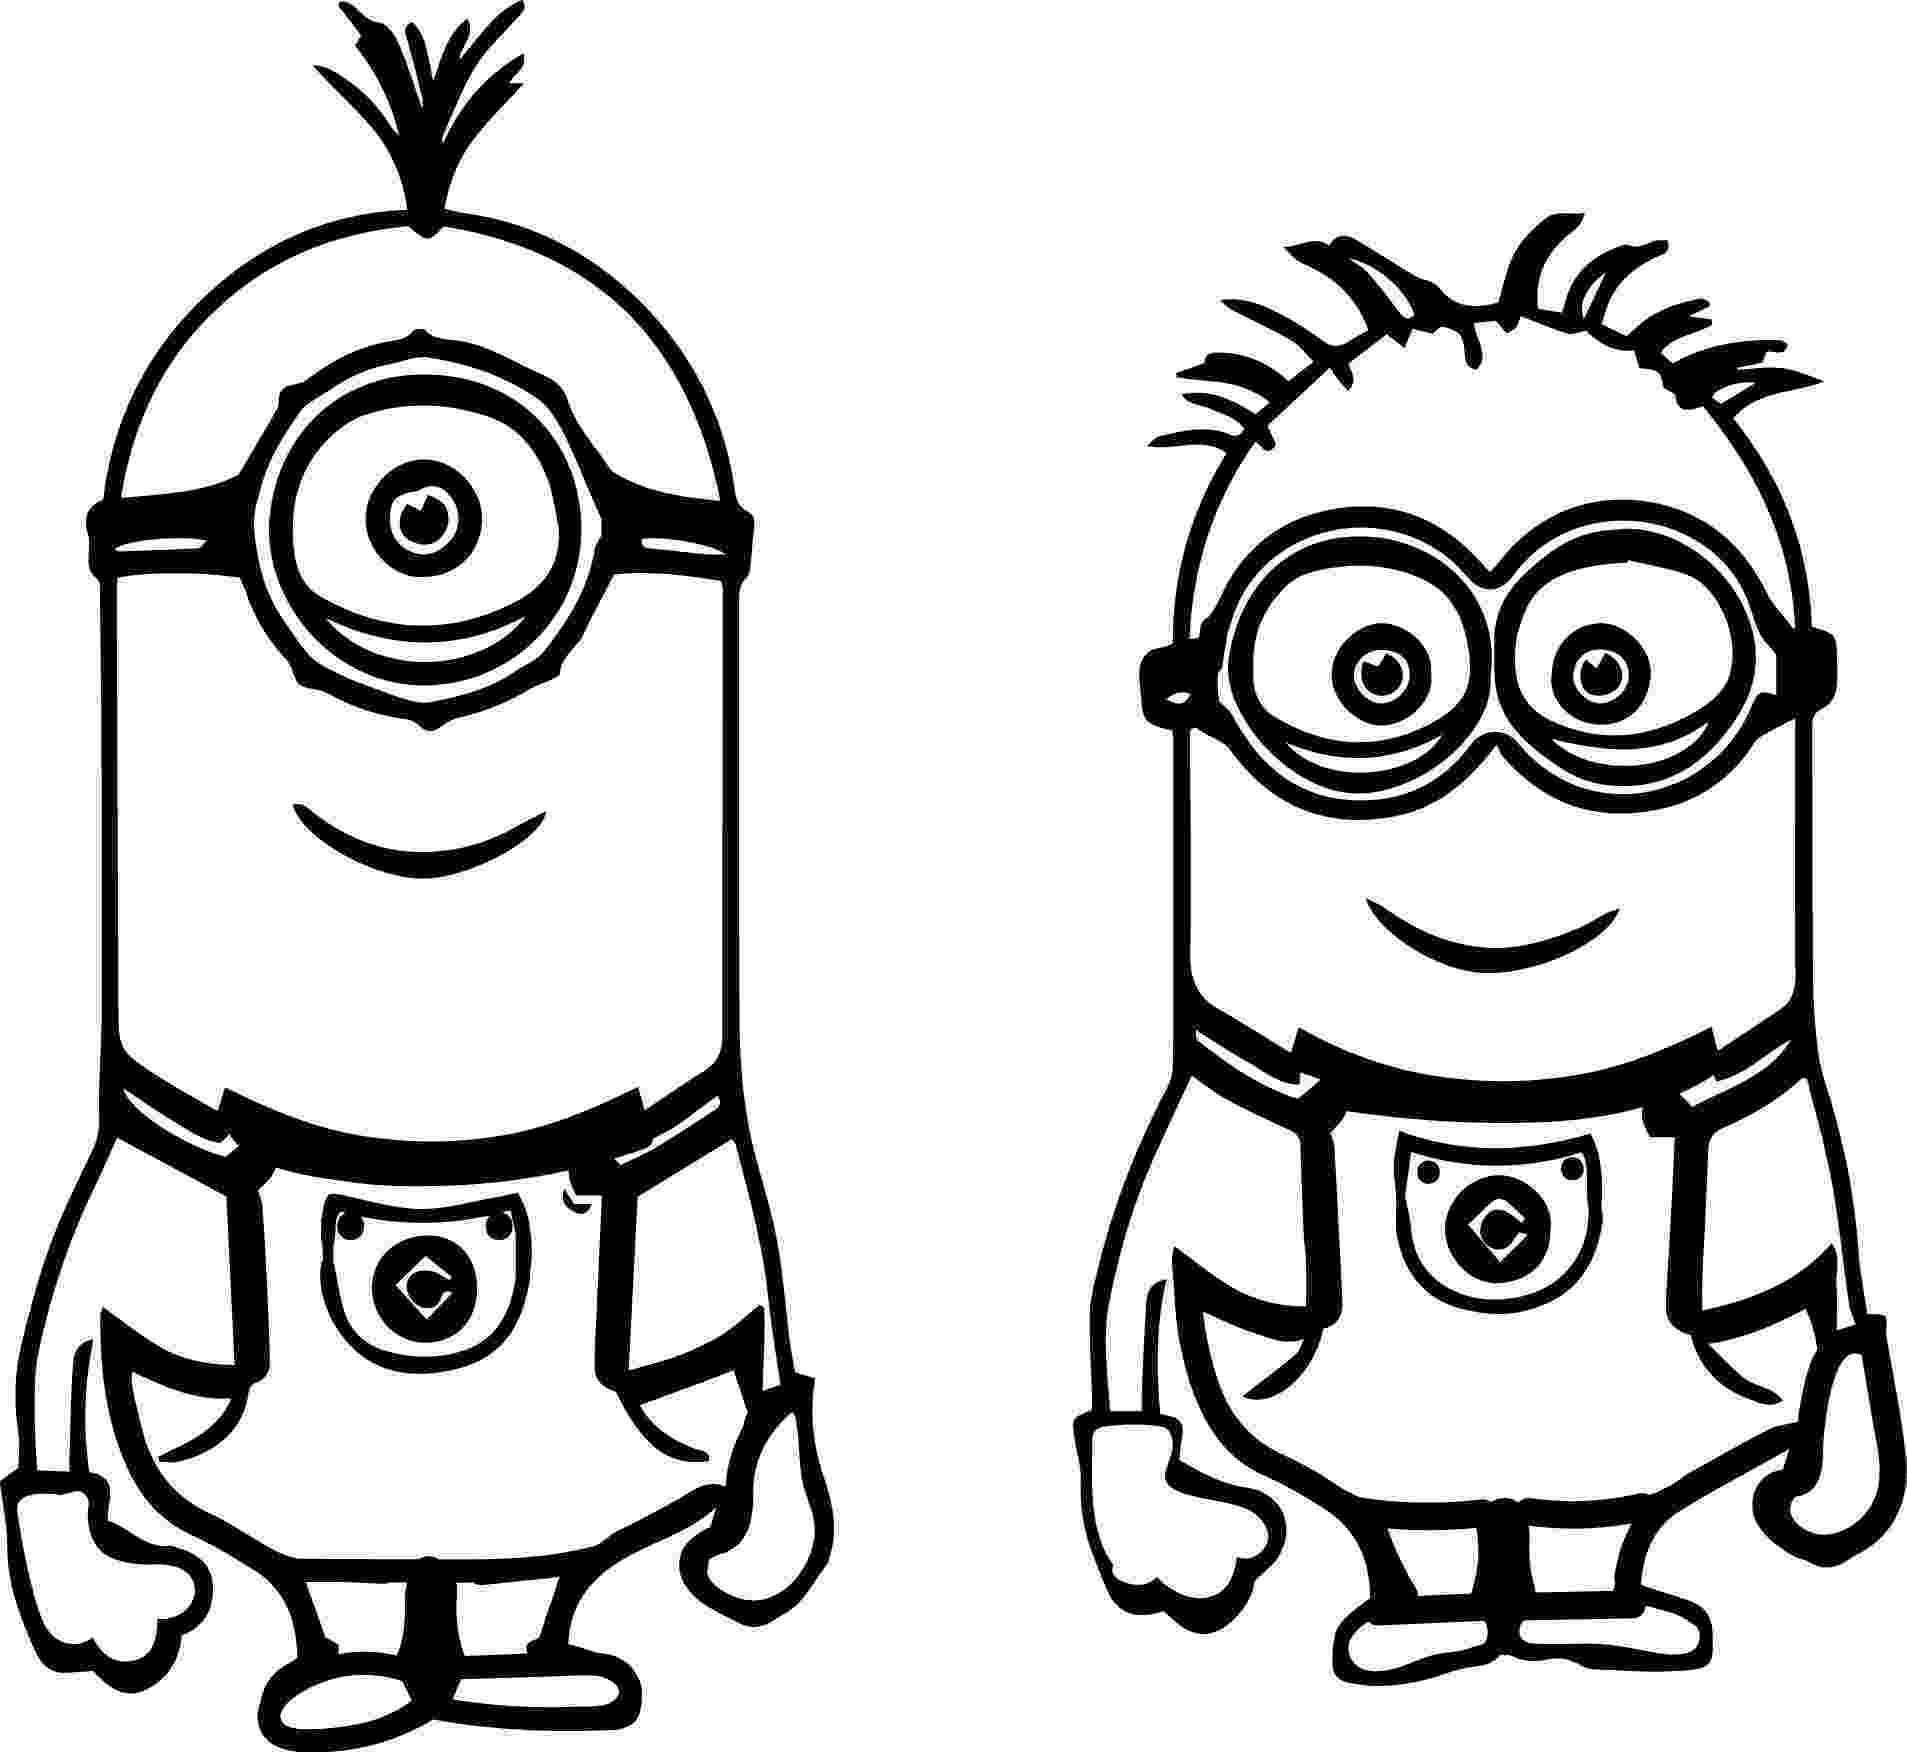 minions to color minion coloring pages free download best minion coloring to color minions